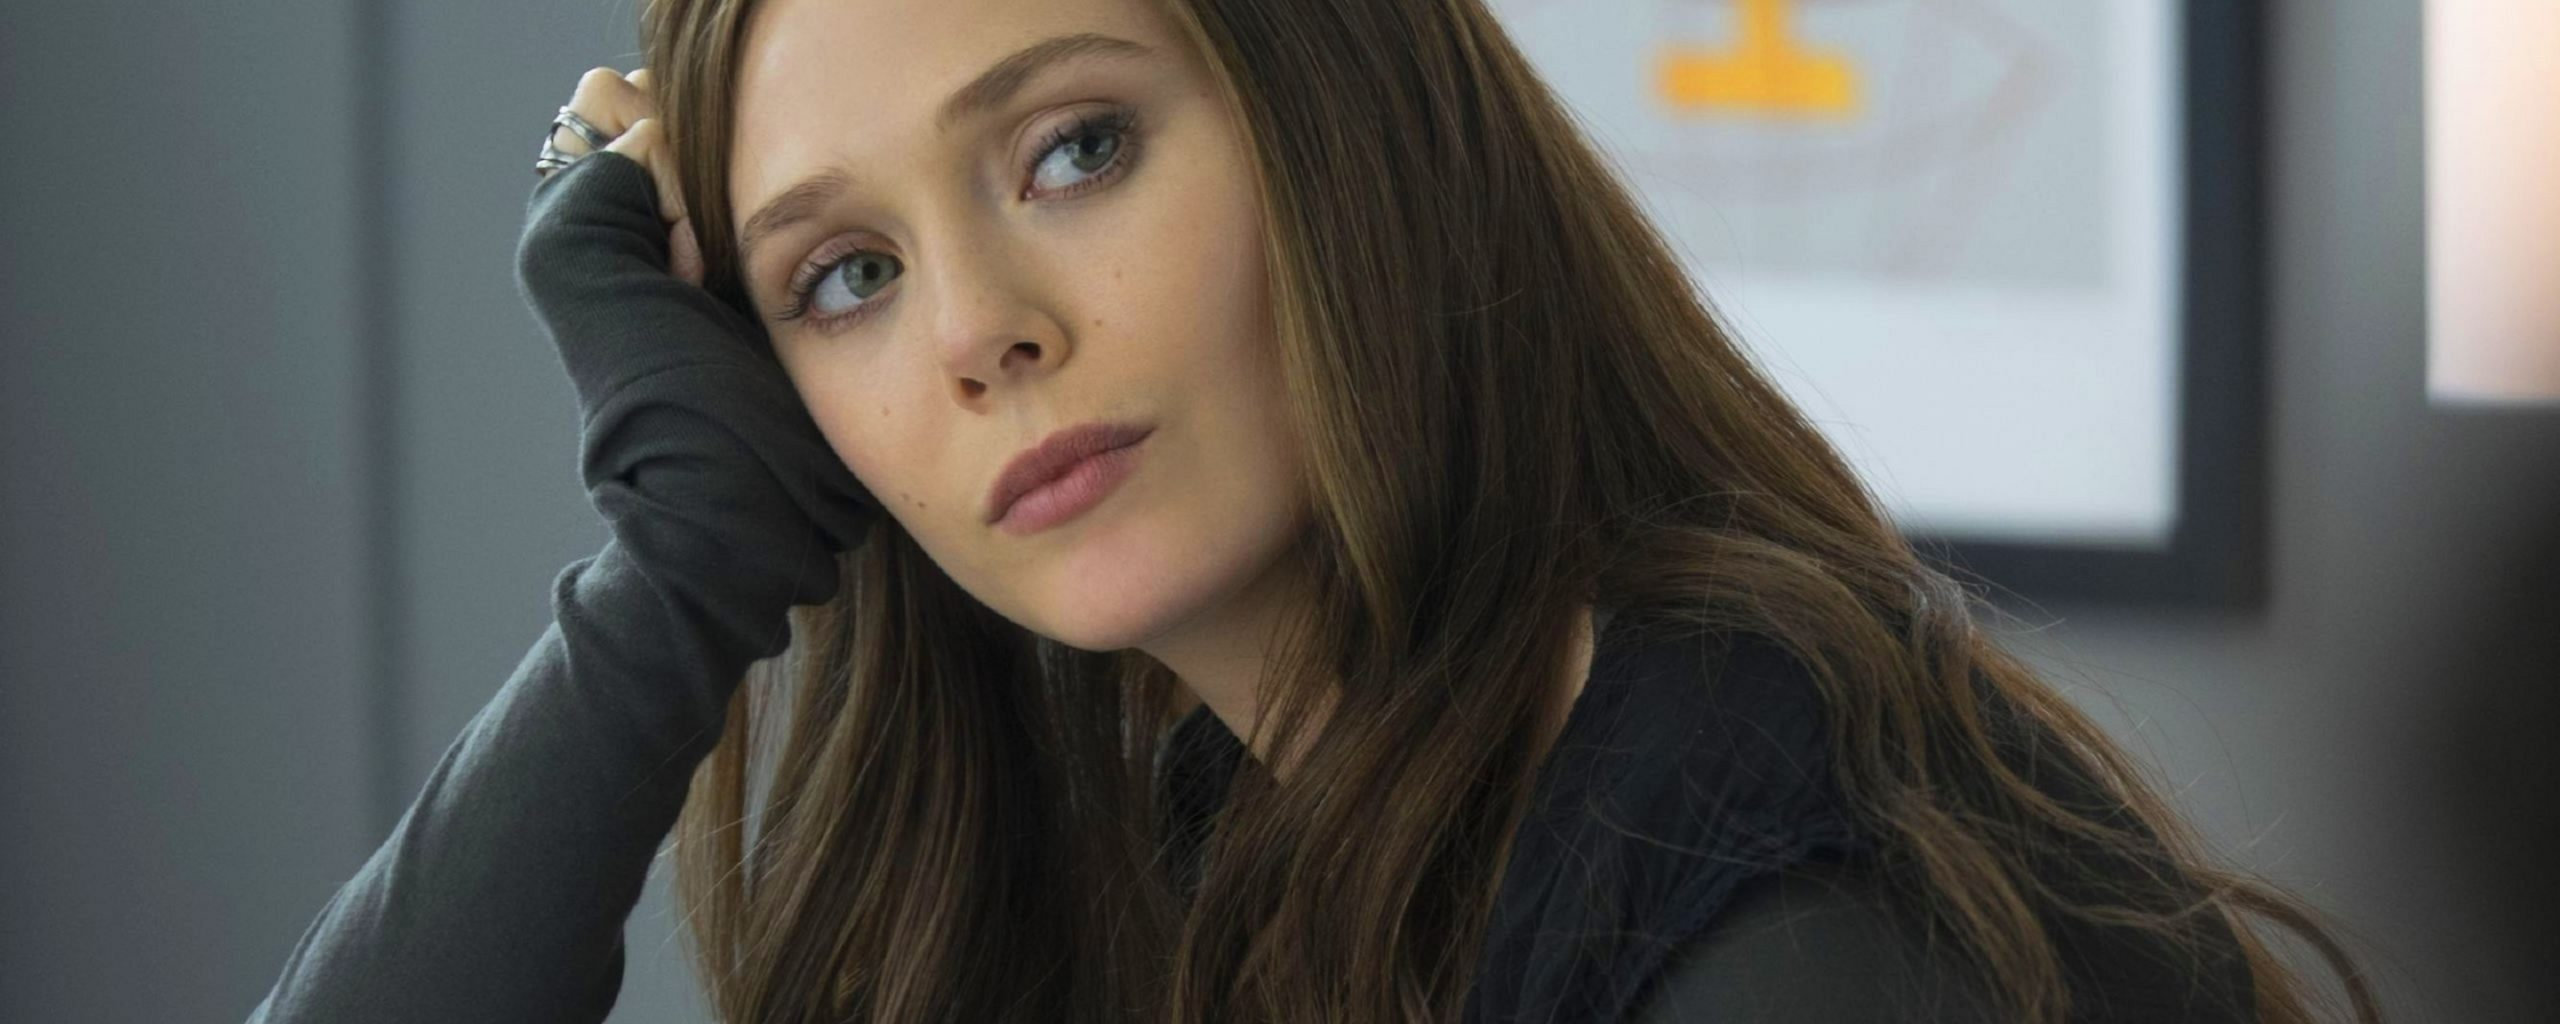 Elizabeth Olsen 2016 HD Wallpapers 2560x1024